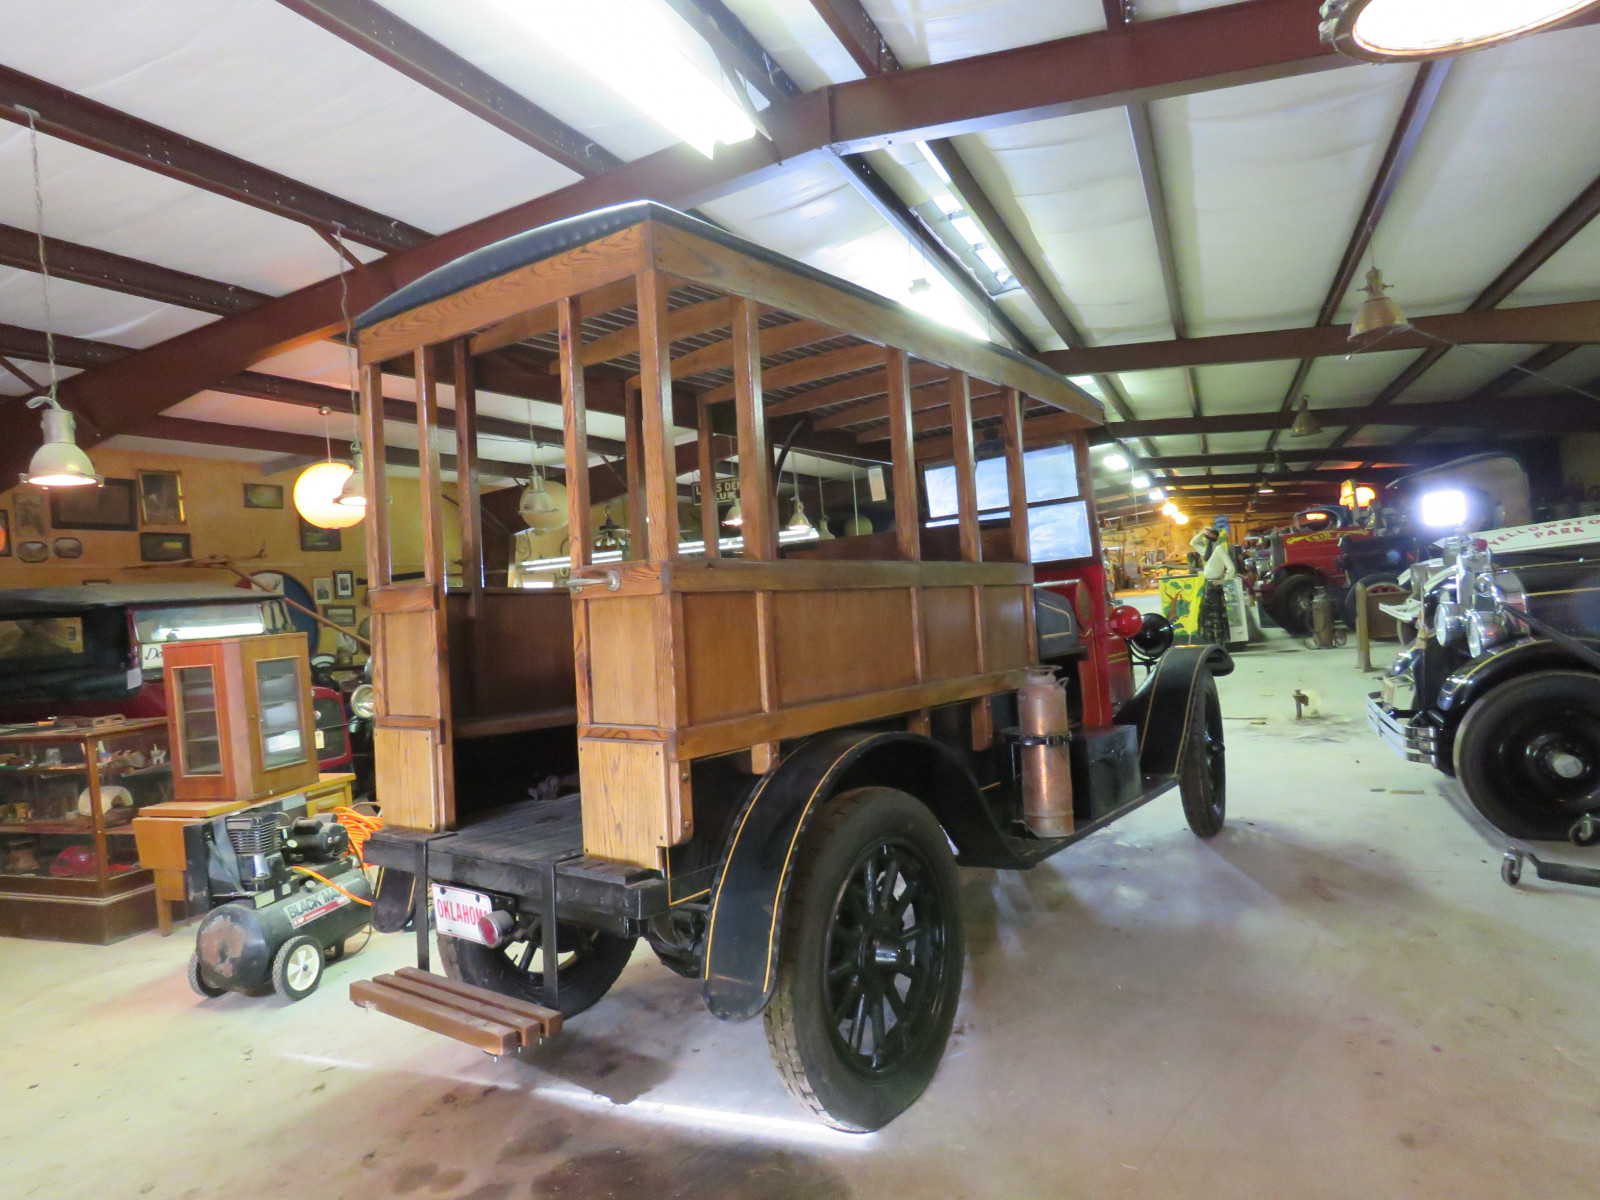 Rare 1920 REO Speedwagon Canopy Express Truck - Image 12